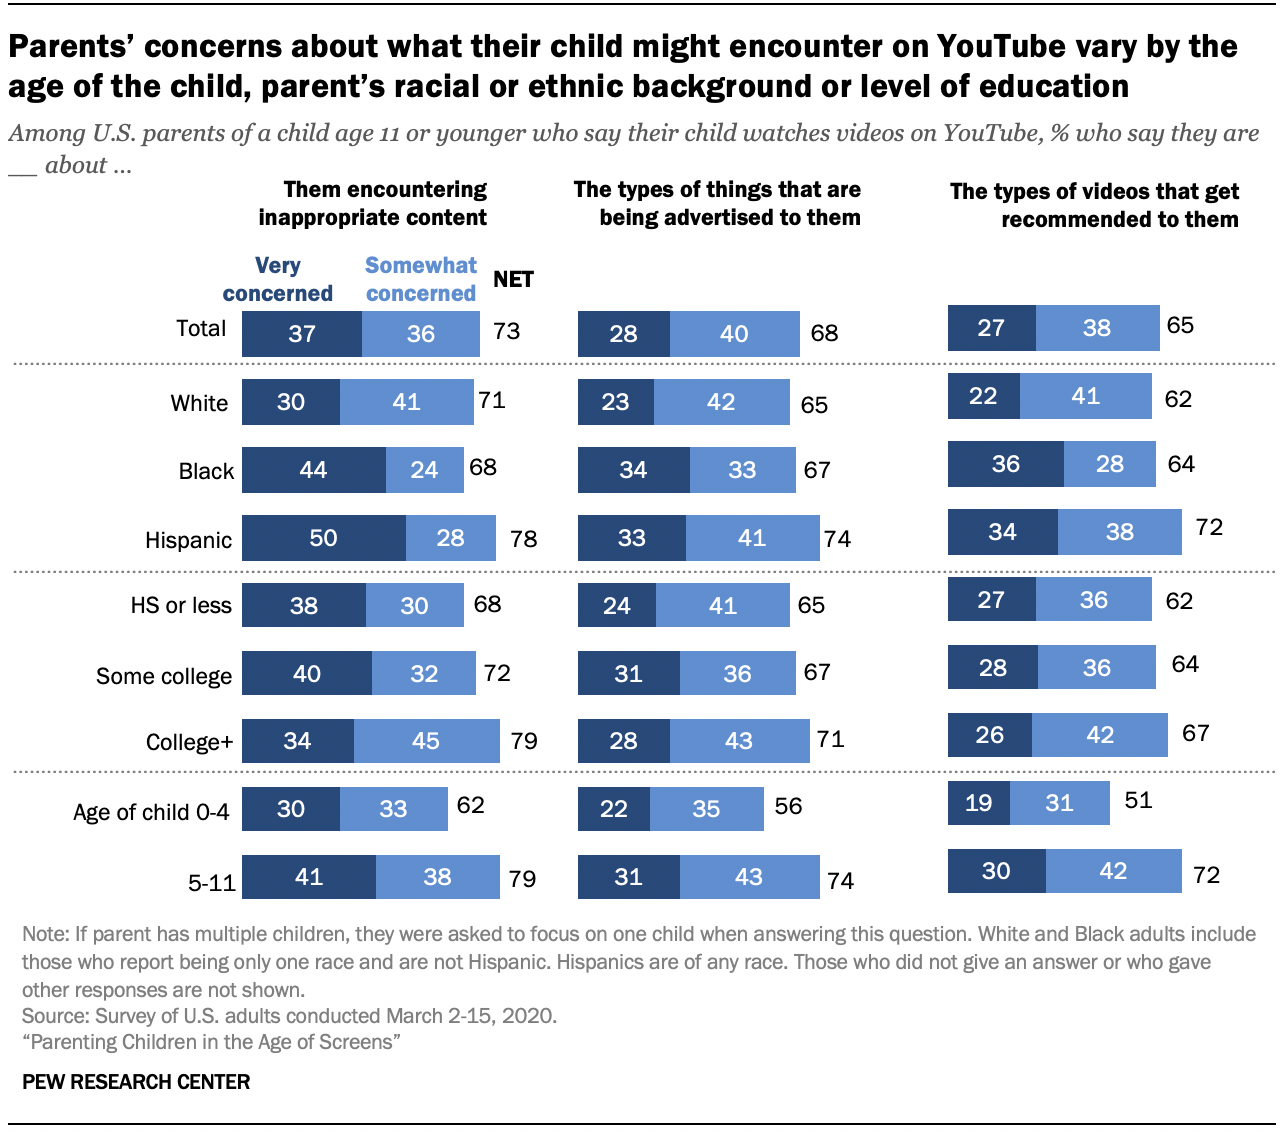 Chart shows parents' concerns about what their child might encounter on YouTube vary by the age of the child, parent's racial or ethnic background or level of education